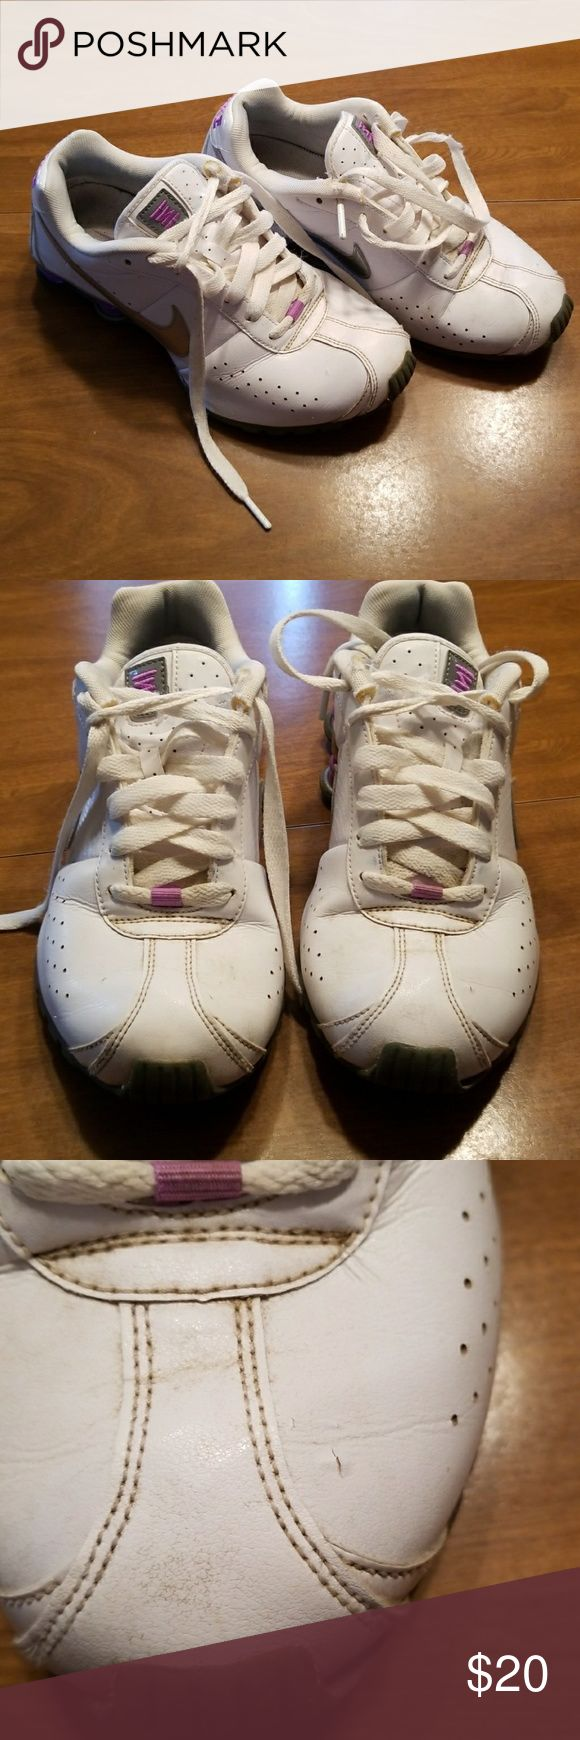 Nike shox classic White and lavender, some wear as shown in pics, these were worn a lot but still have some life left, average condition. Nike Shoes Sneakers